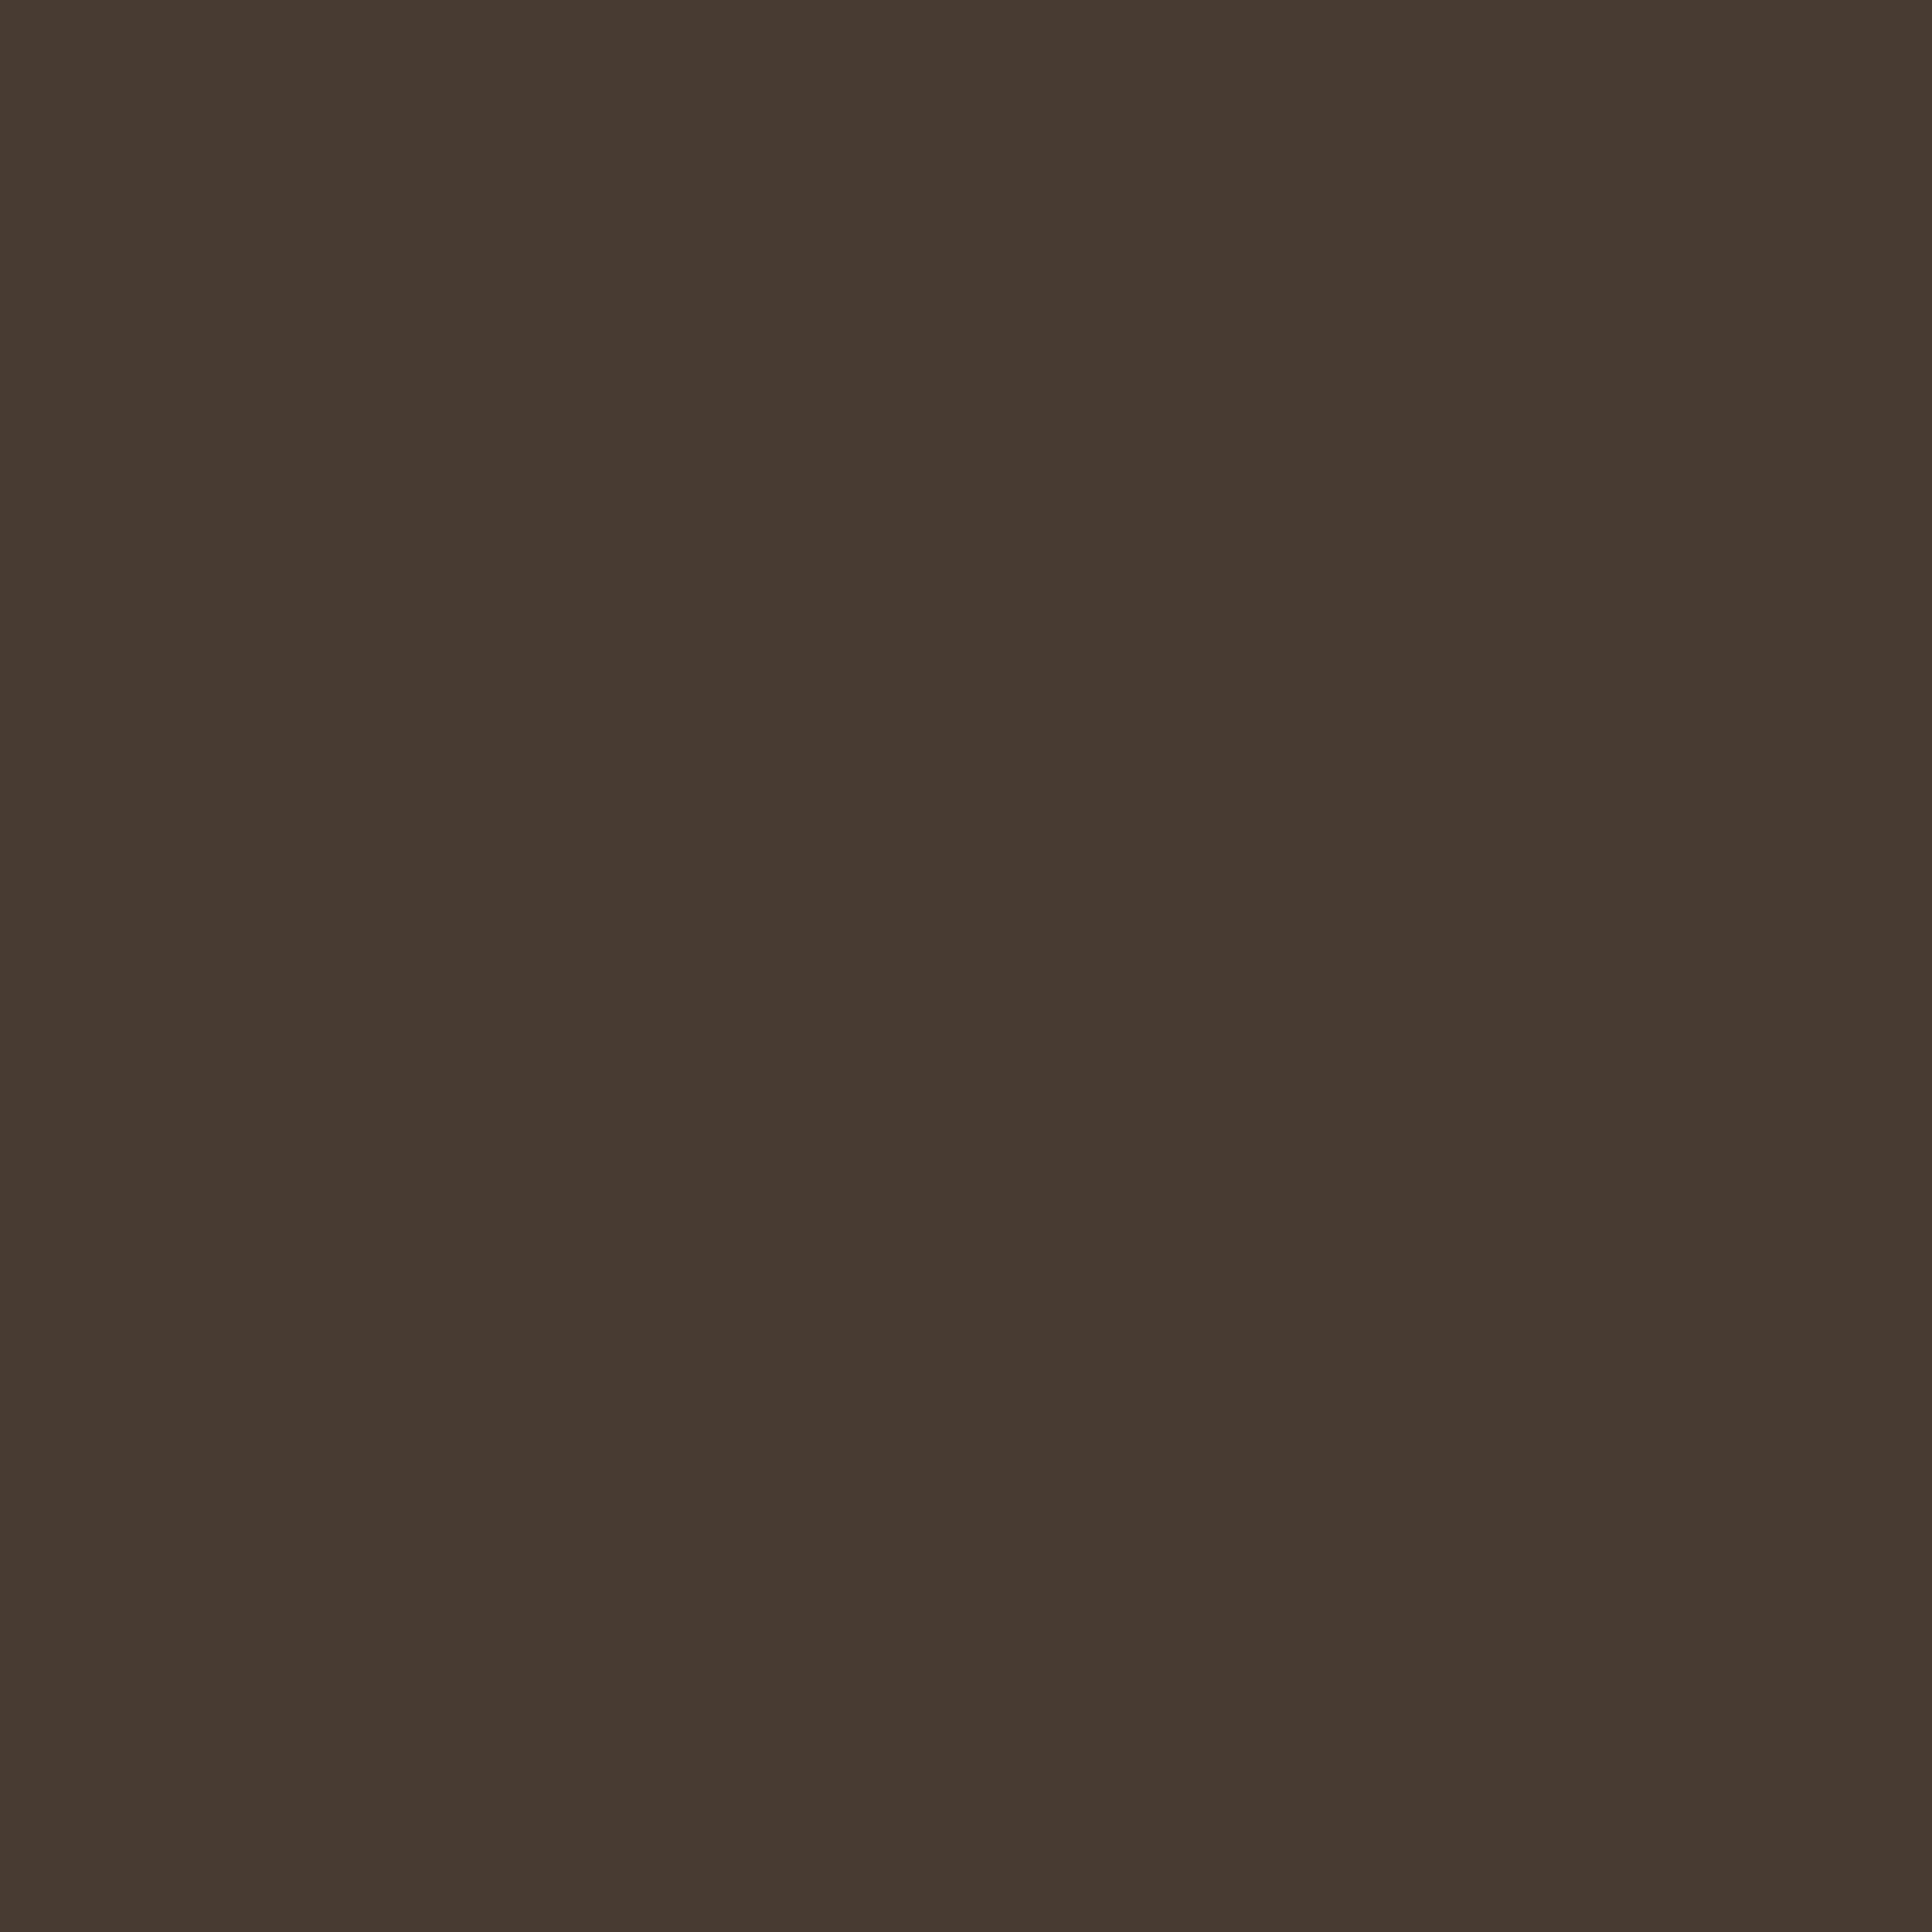 What Is Color Taupe Look Like: 2048x2048 Dark Taupe Solid Color Background